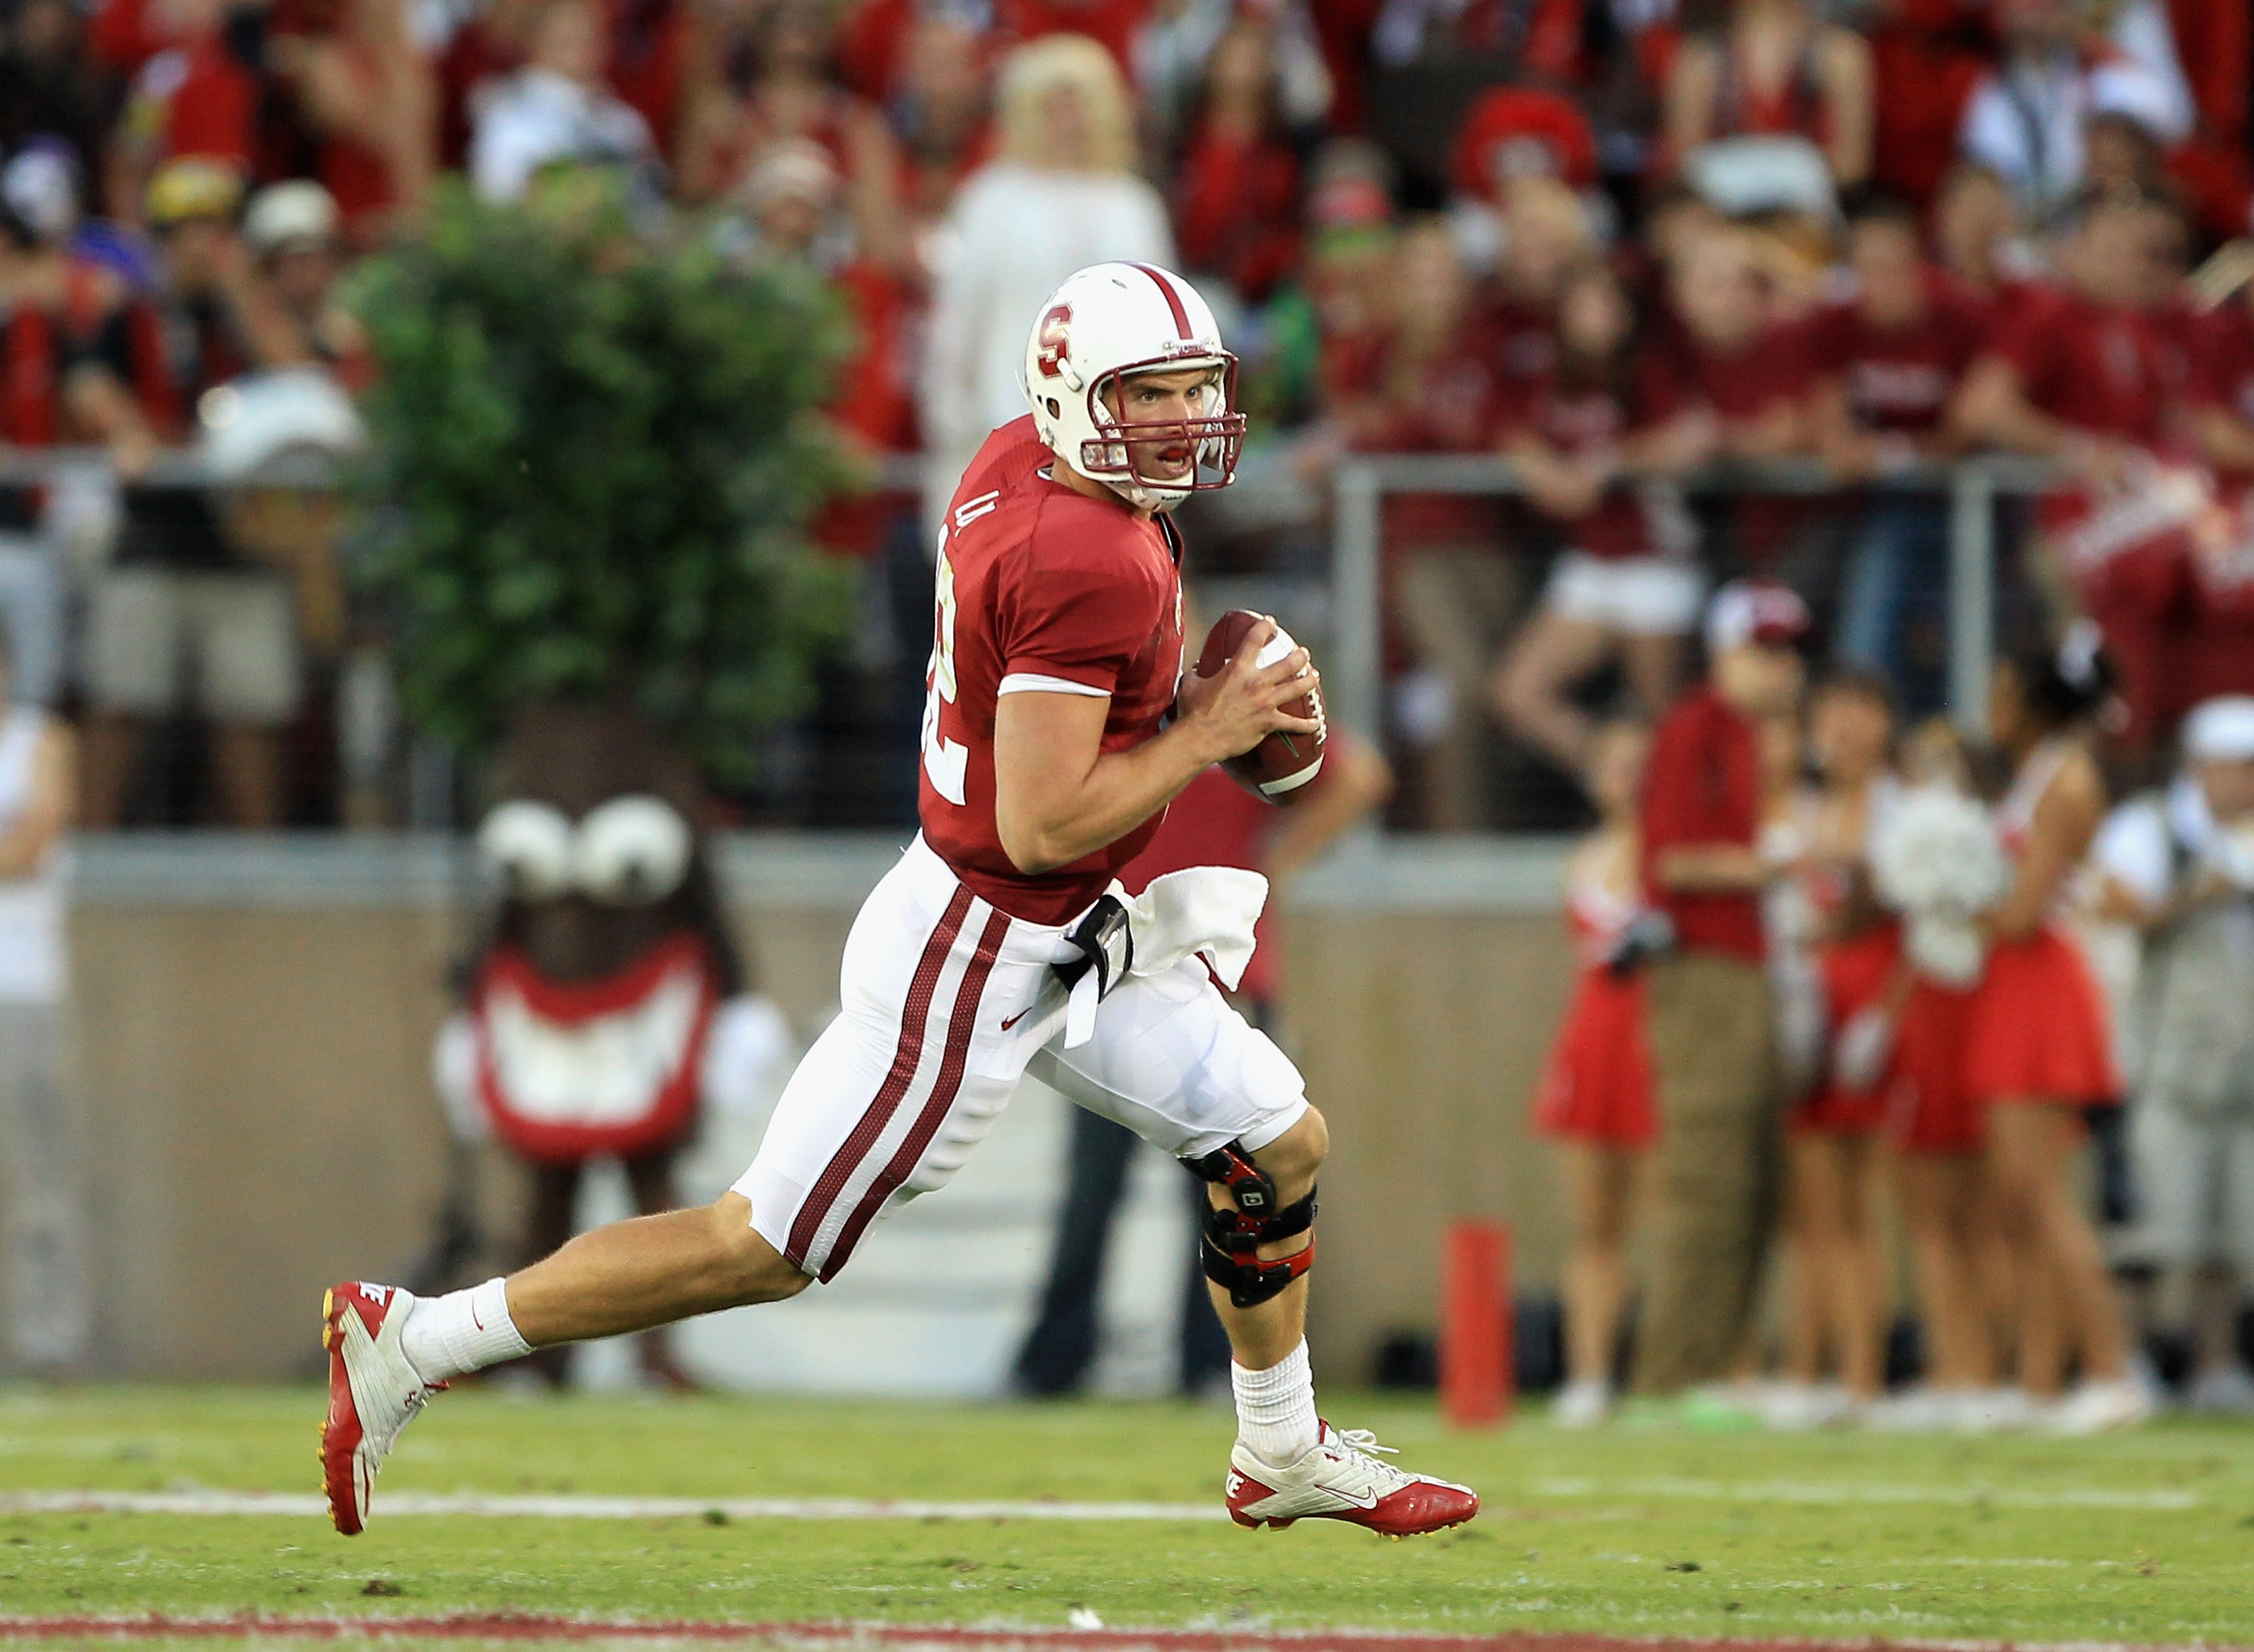 PALO ALTO, CA - OCTOBER 09:  Andrew Luck #12 of the Stanford Cardinal in action during their game against the USC Trojans at Stanford Stadium on October 9, 2010 in Palo Alto, California.  (Photo by Ezra Shaw/Getty Images)